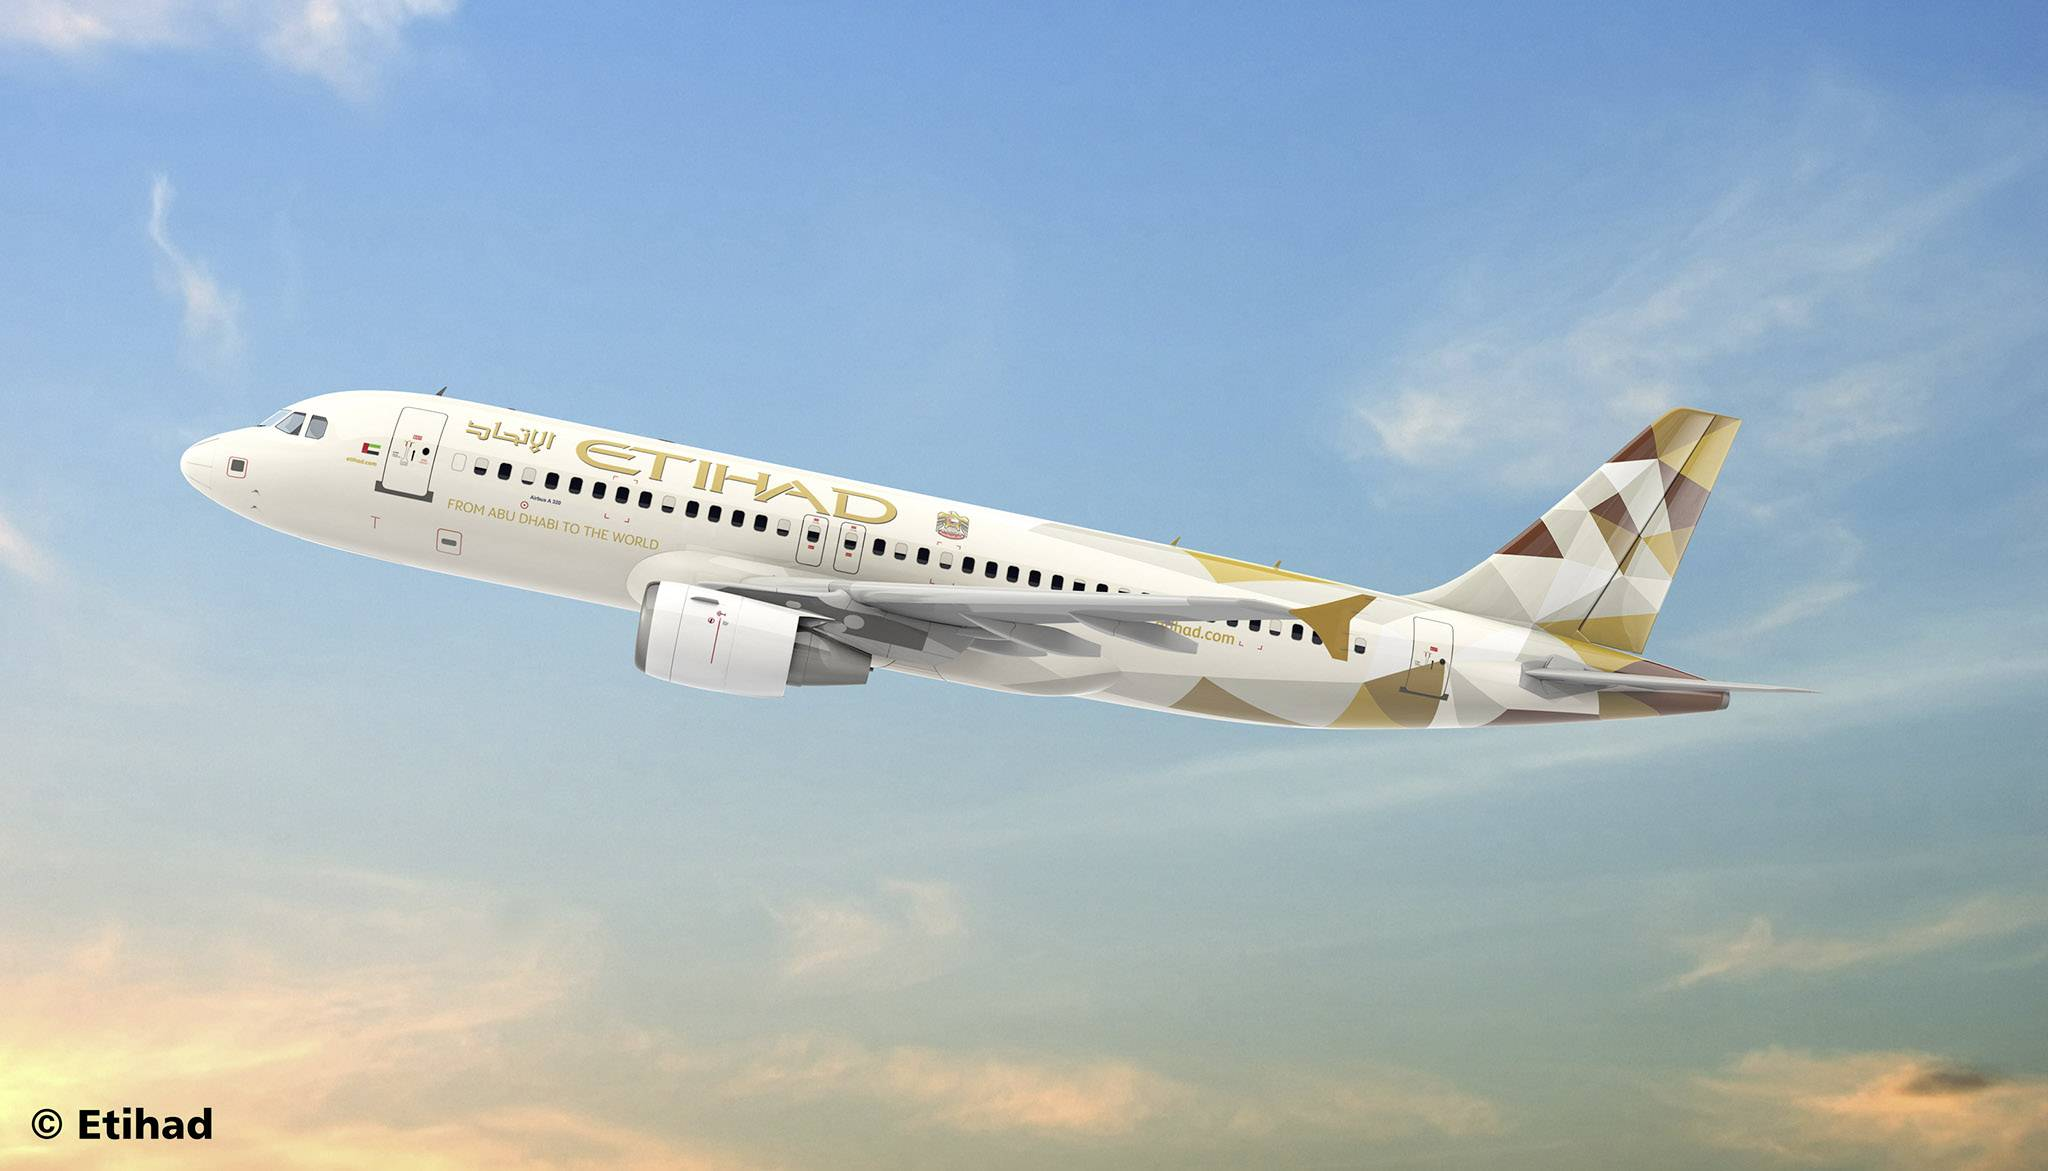 Model letadla, stavebnice Revell 03968 Etihad Airways Airbus A320 Etihad Airways 1:144